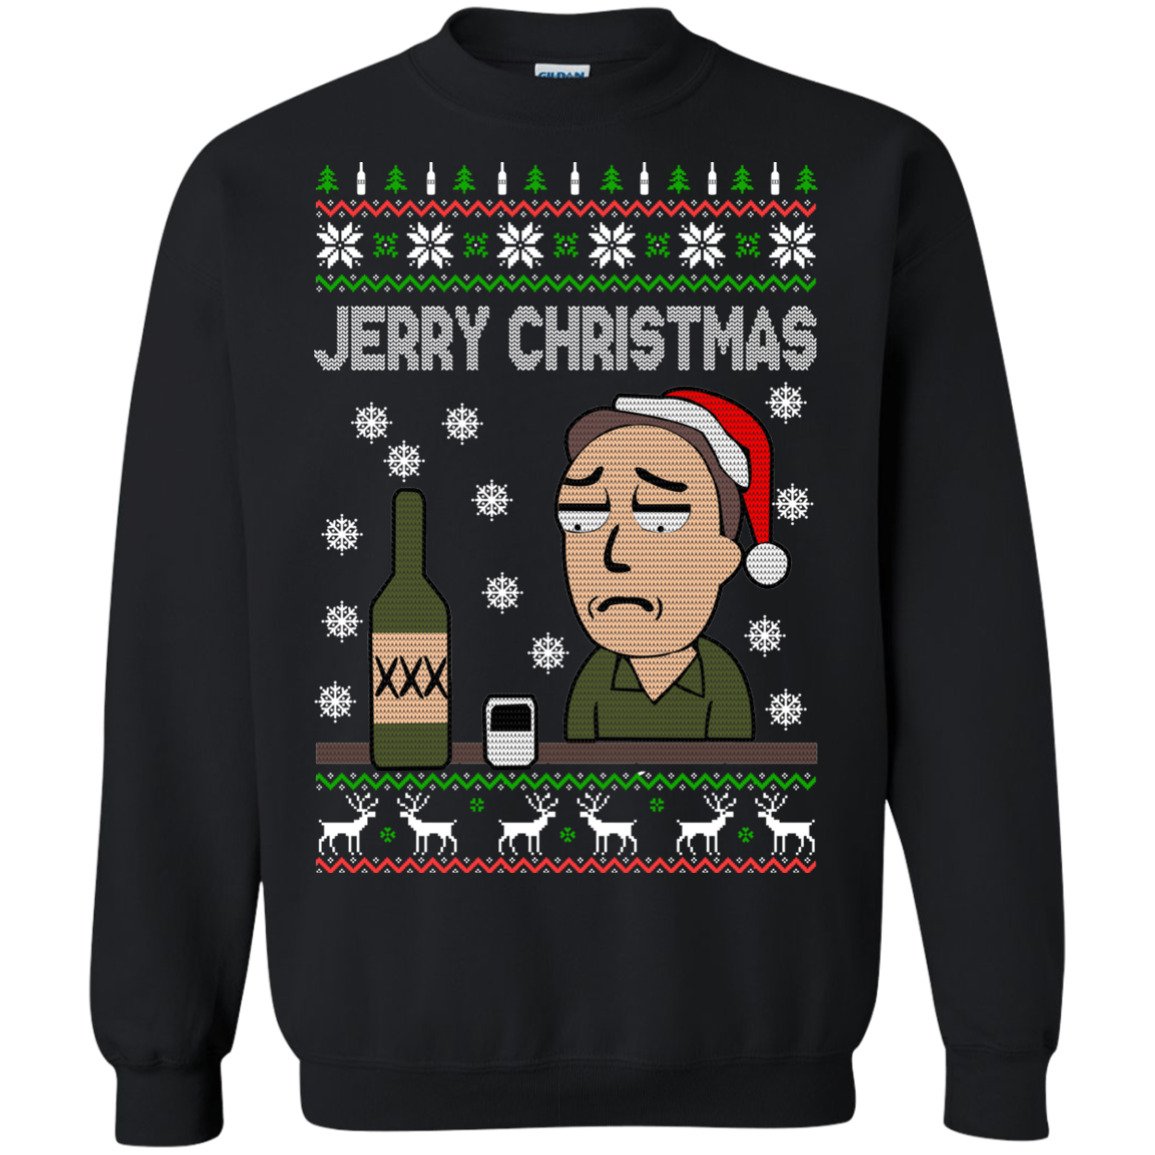 Rick And Morty - Jerry Christmas Sweater | Allbluetees.com